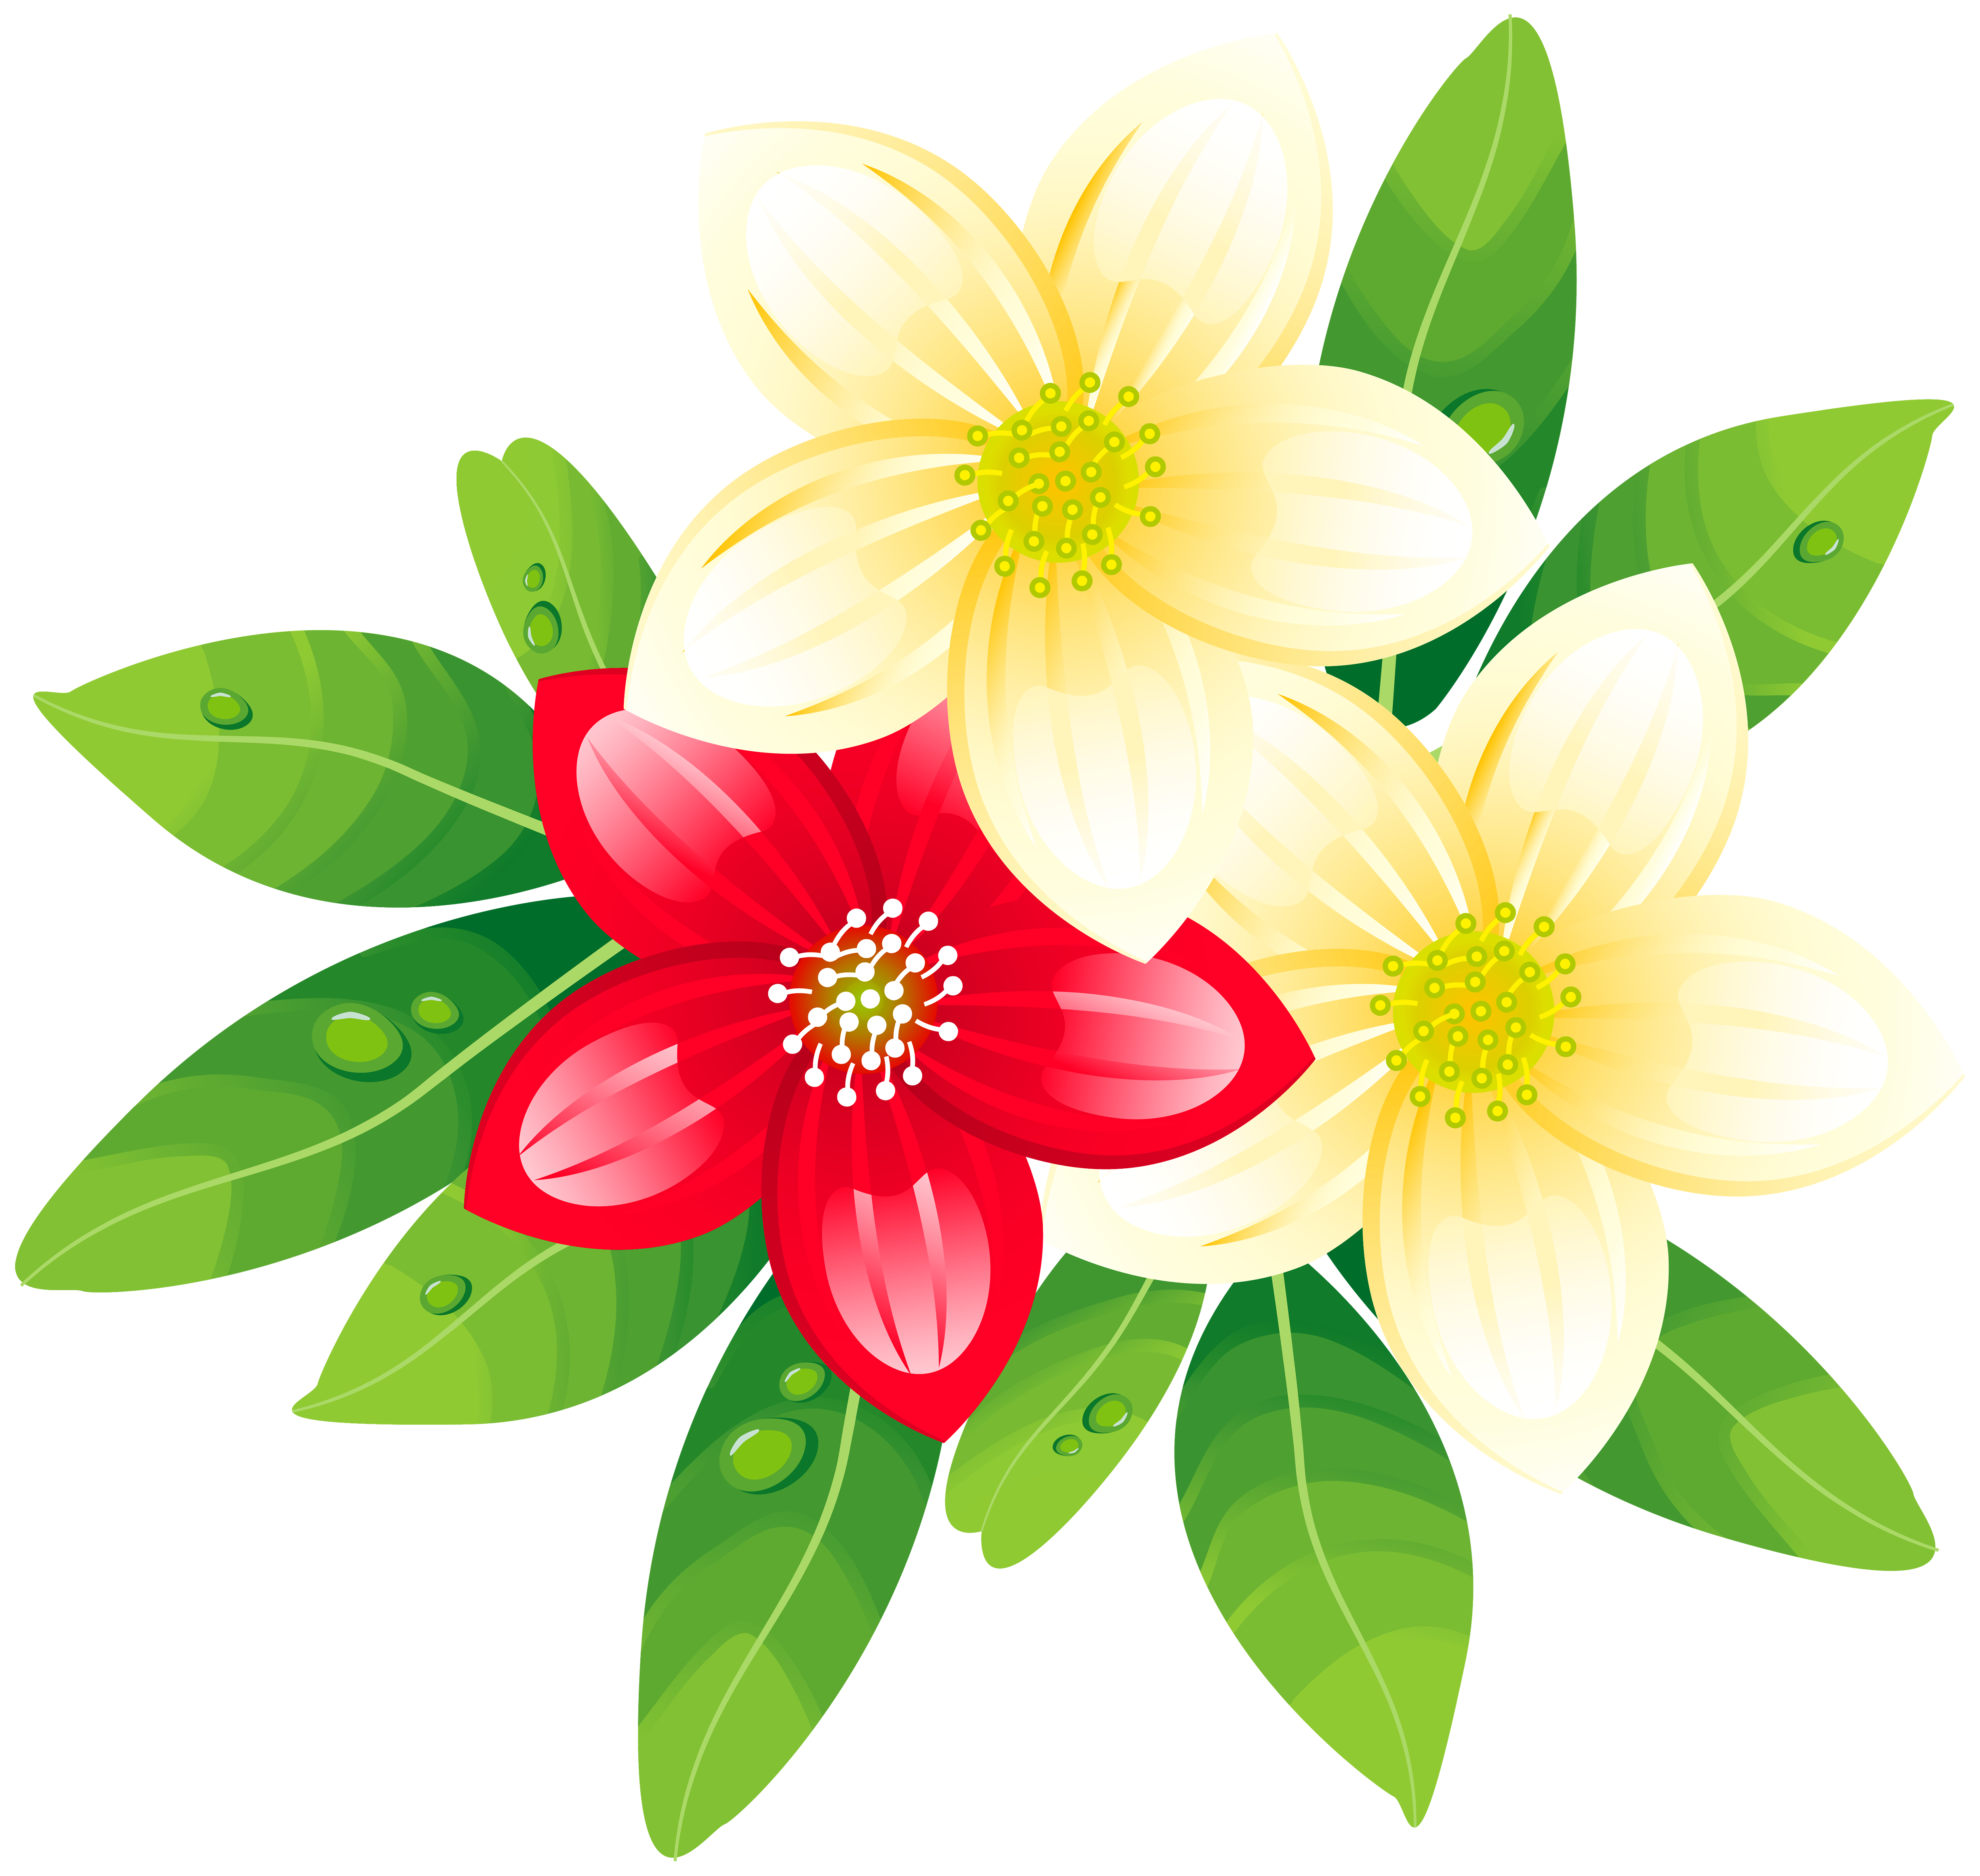 Exotic flower clipart 20 free Cliparts | Download images ...